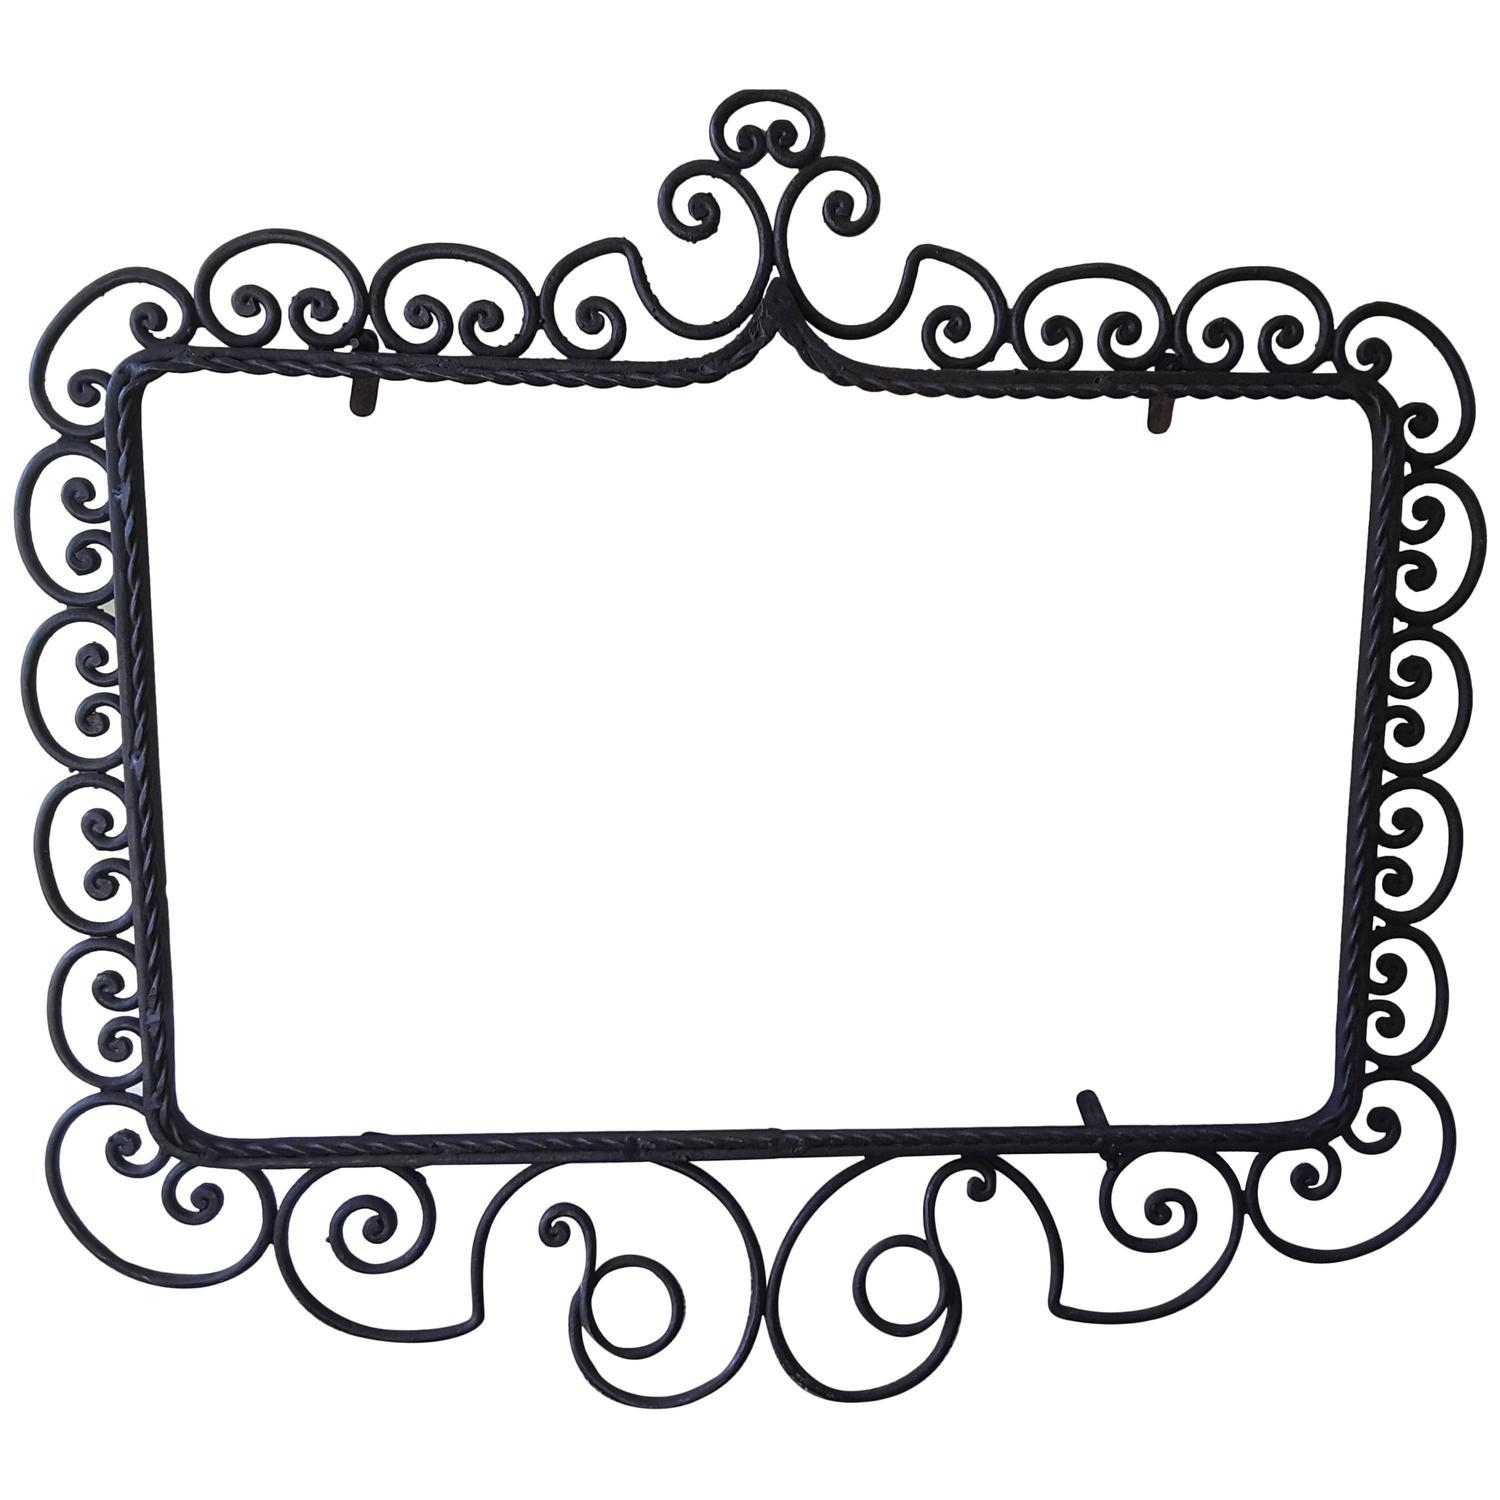 Wrought Iron Mirror/picture Frame, Hand Forged, Late Victorian Throughout Black Wrought Iron Mirrors (View 4 of 20)